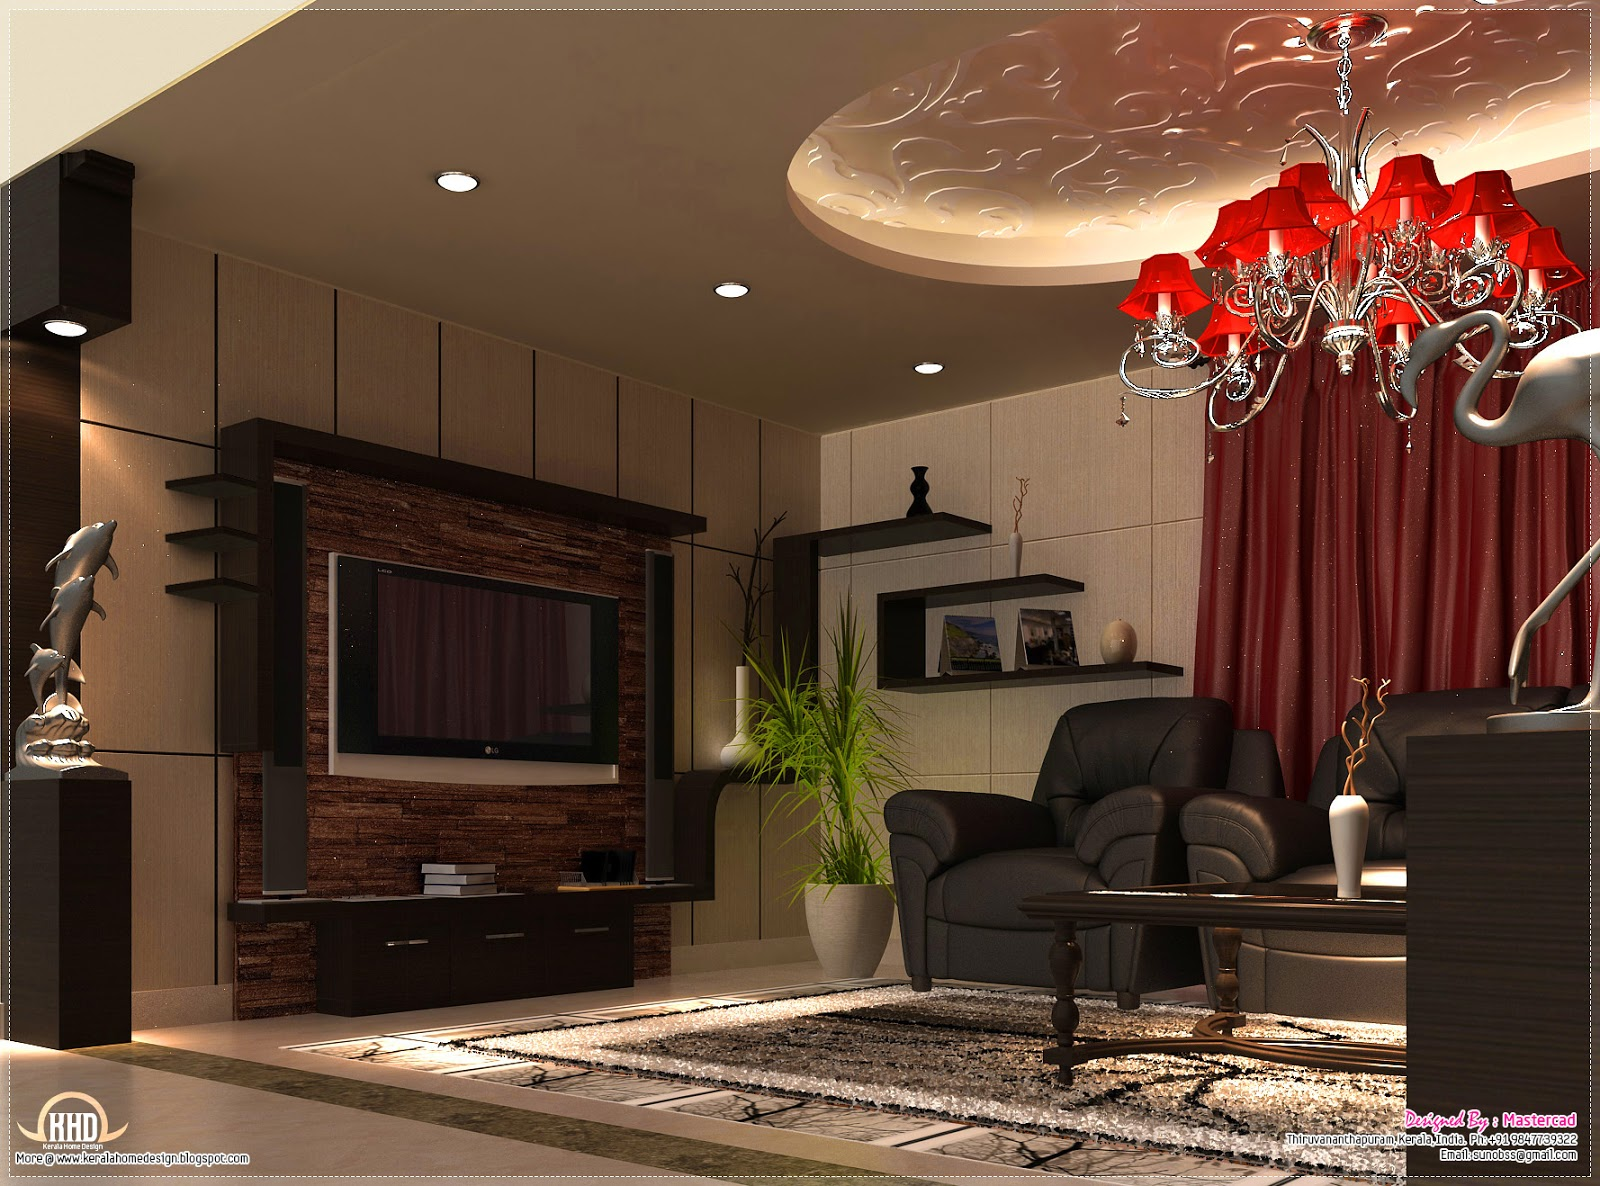 Interior design ideas kerala home design and floor plans Interior design and interior decoration